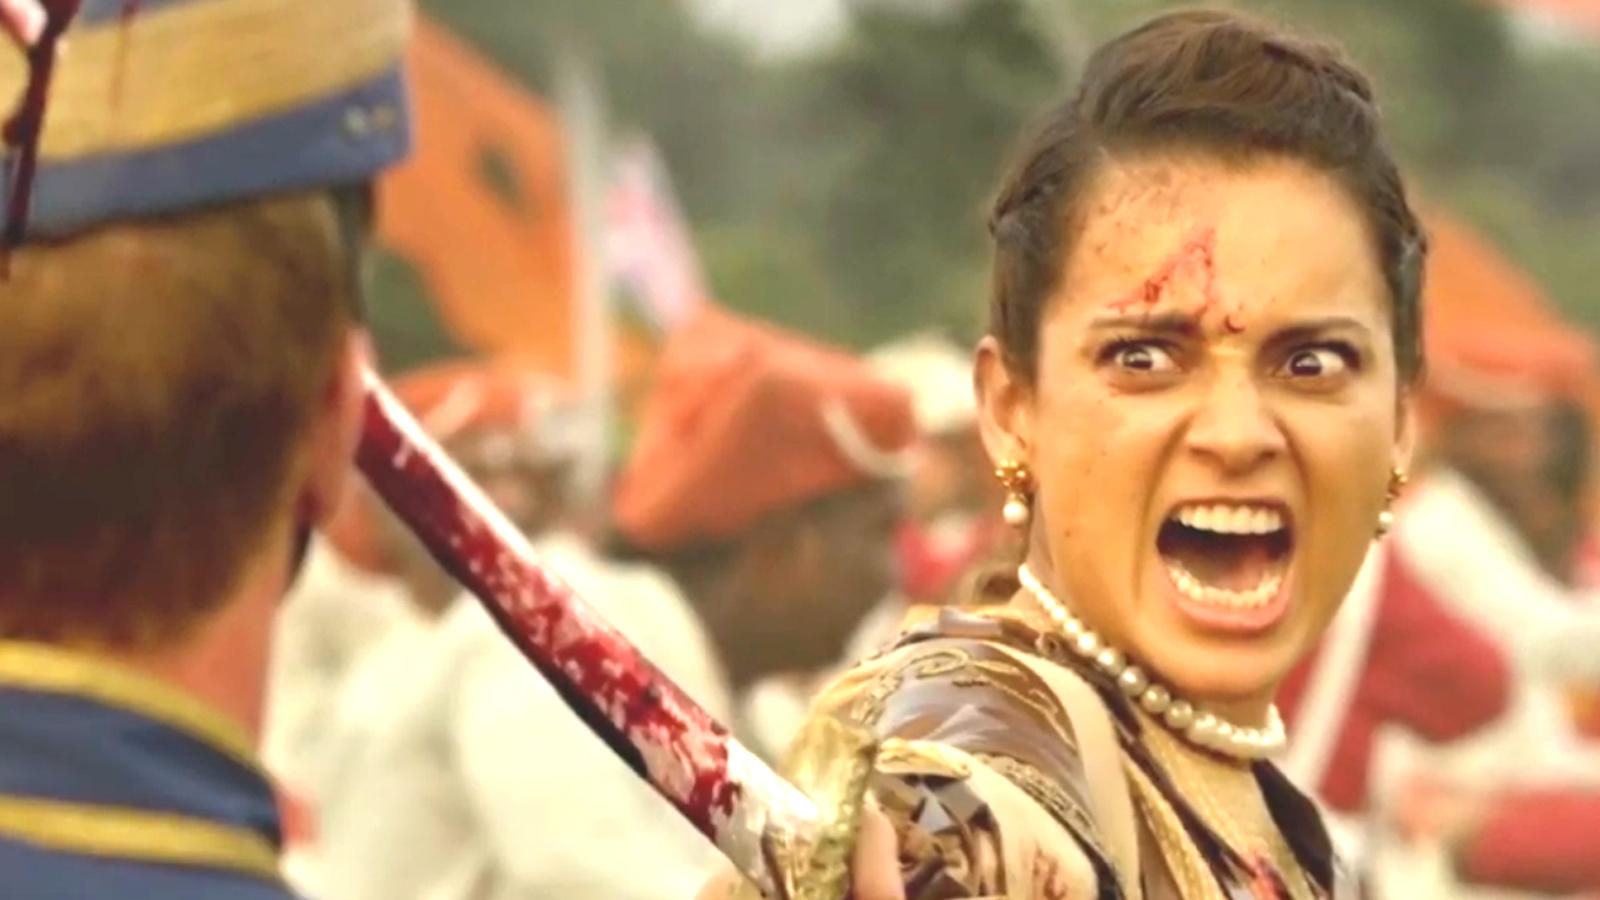 Manikarnika: The Queen of Jhansi' trailer: Kangana Ranaut's historical epic looks visually stunning